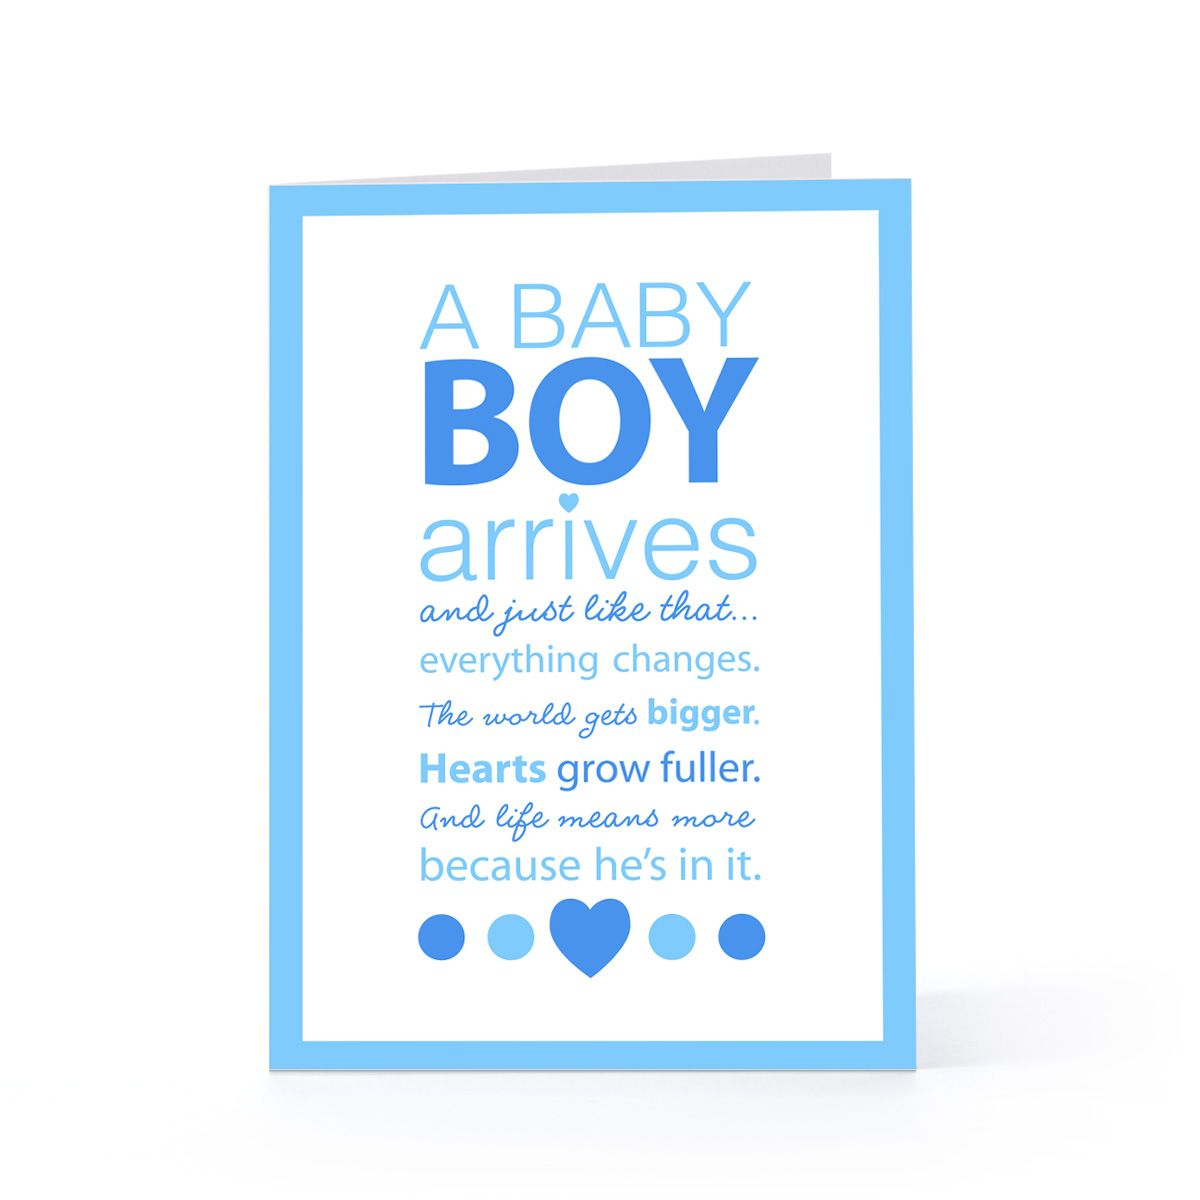 congratulations on new baby boy messages baby boy congratulations messages mention new baby arrivals